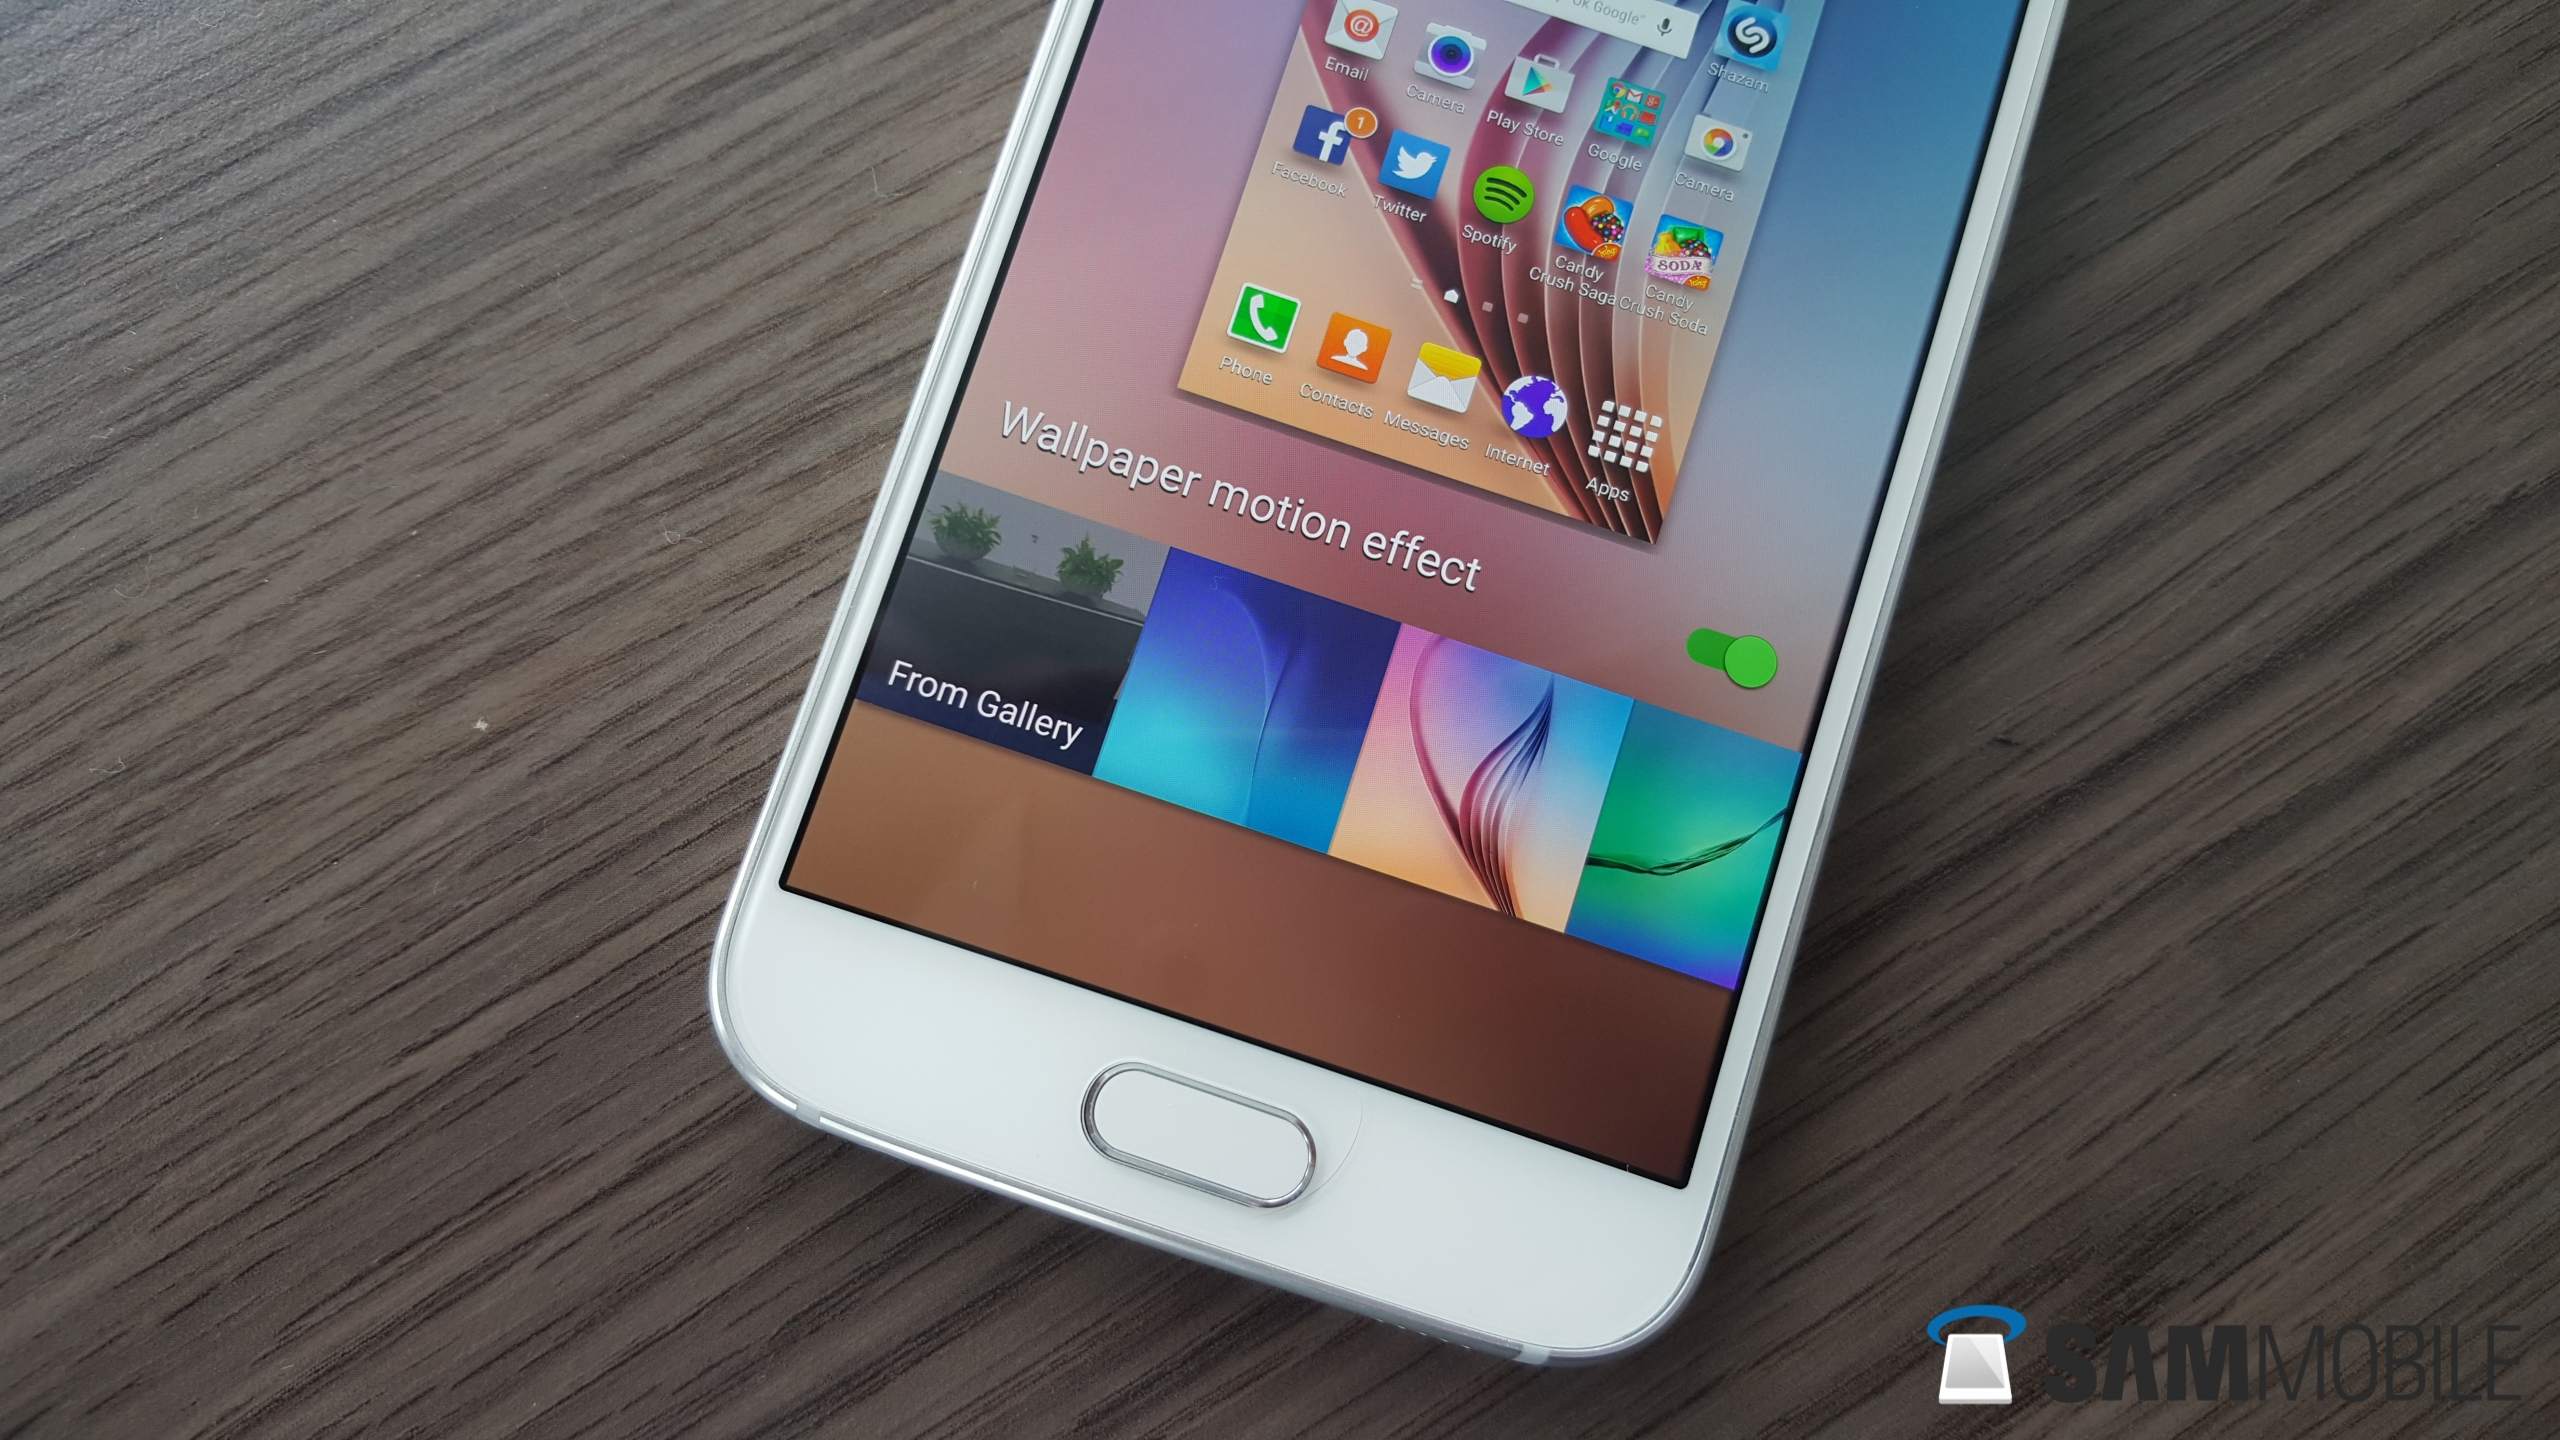 Android 5 1 1 Lollipop update released for Samsung Galaxy S6 and